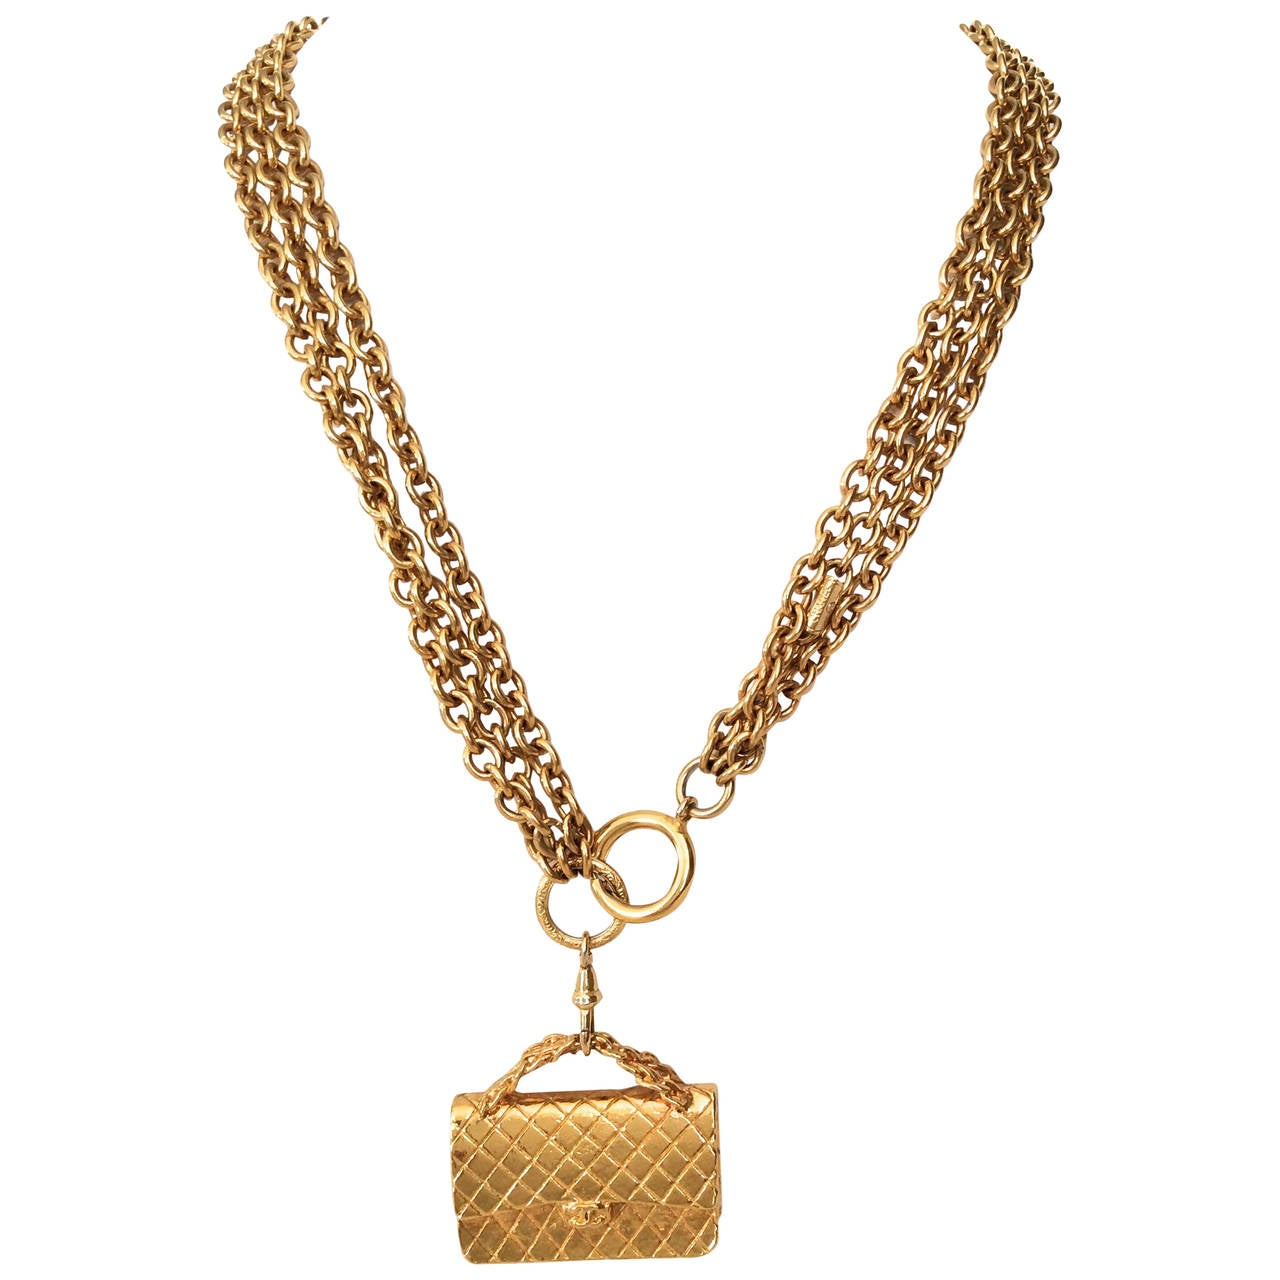 Gold Tone Chanel Triple Chain Necklace with Iconic Purse Pendant 1